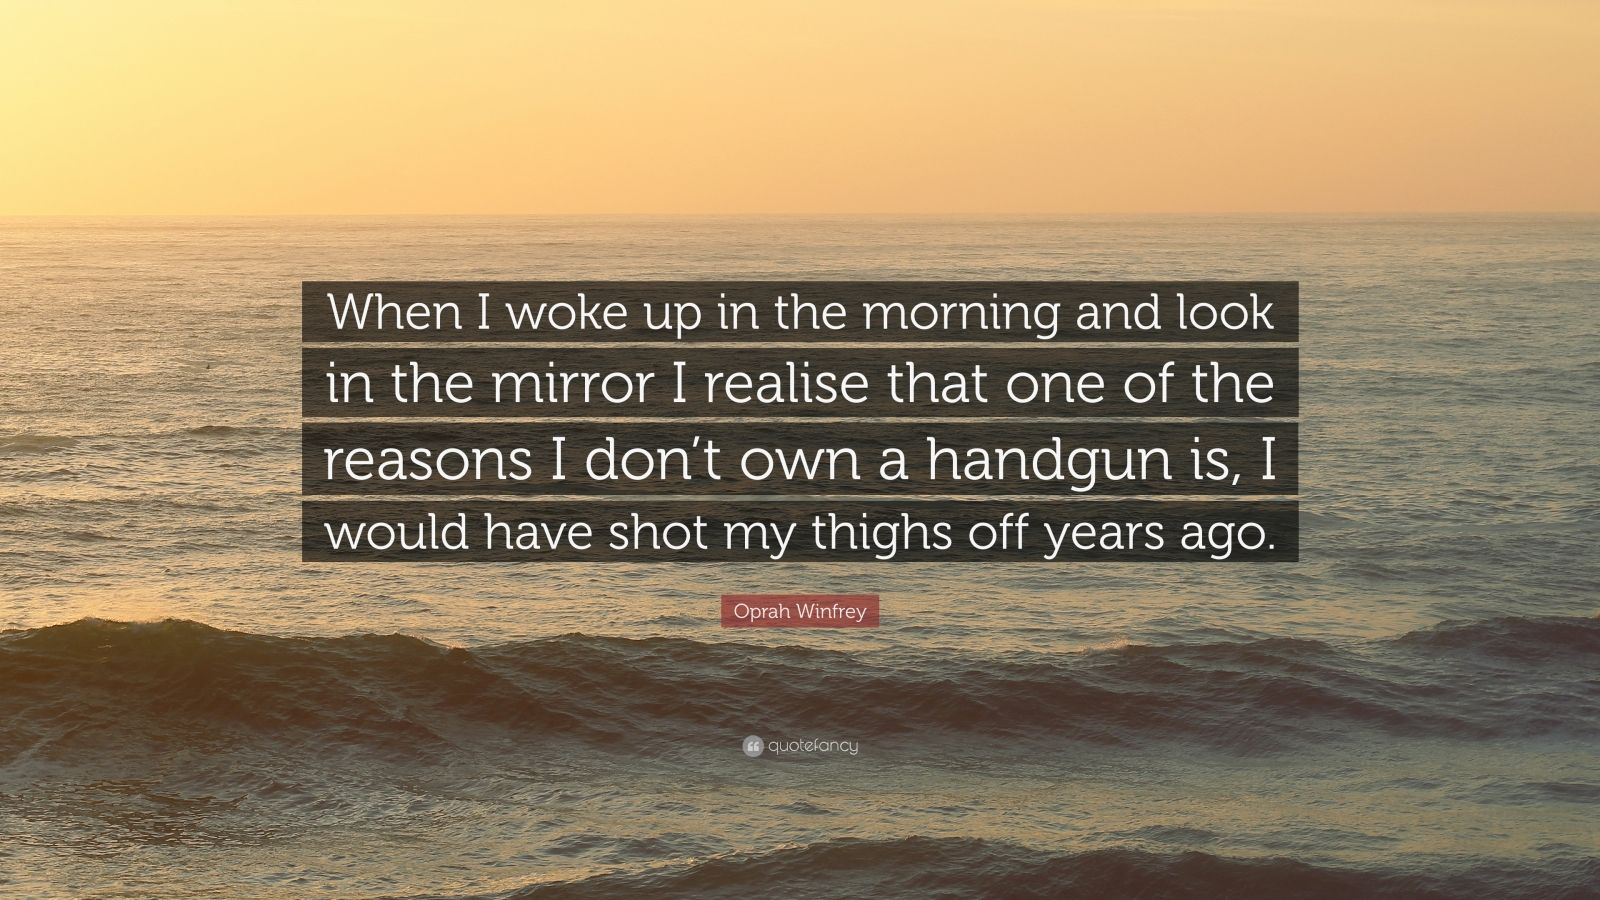 """Oprah Winfrey Quote: """"When I woke up in the morning and look in the mirror I realise that one of the reasons I don't own a handgun is, I would have shot my thighs off years ago."""""""